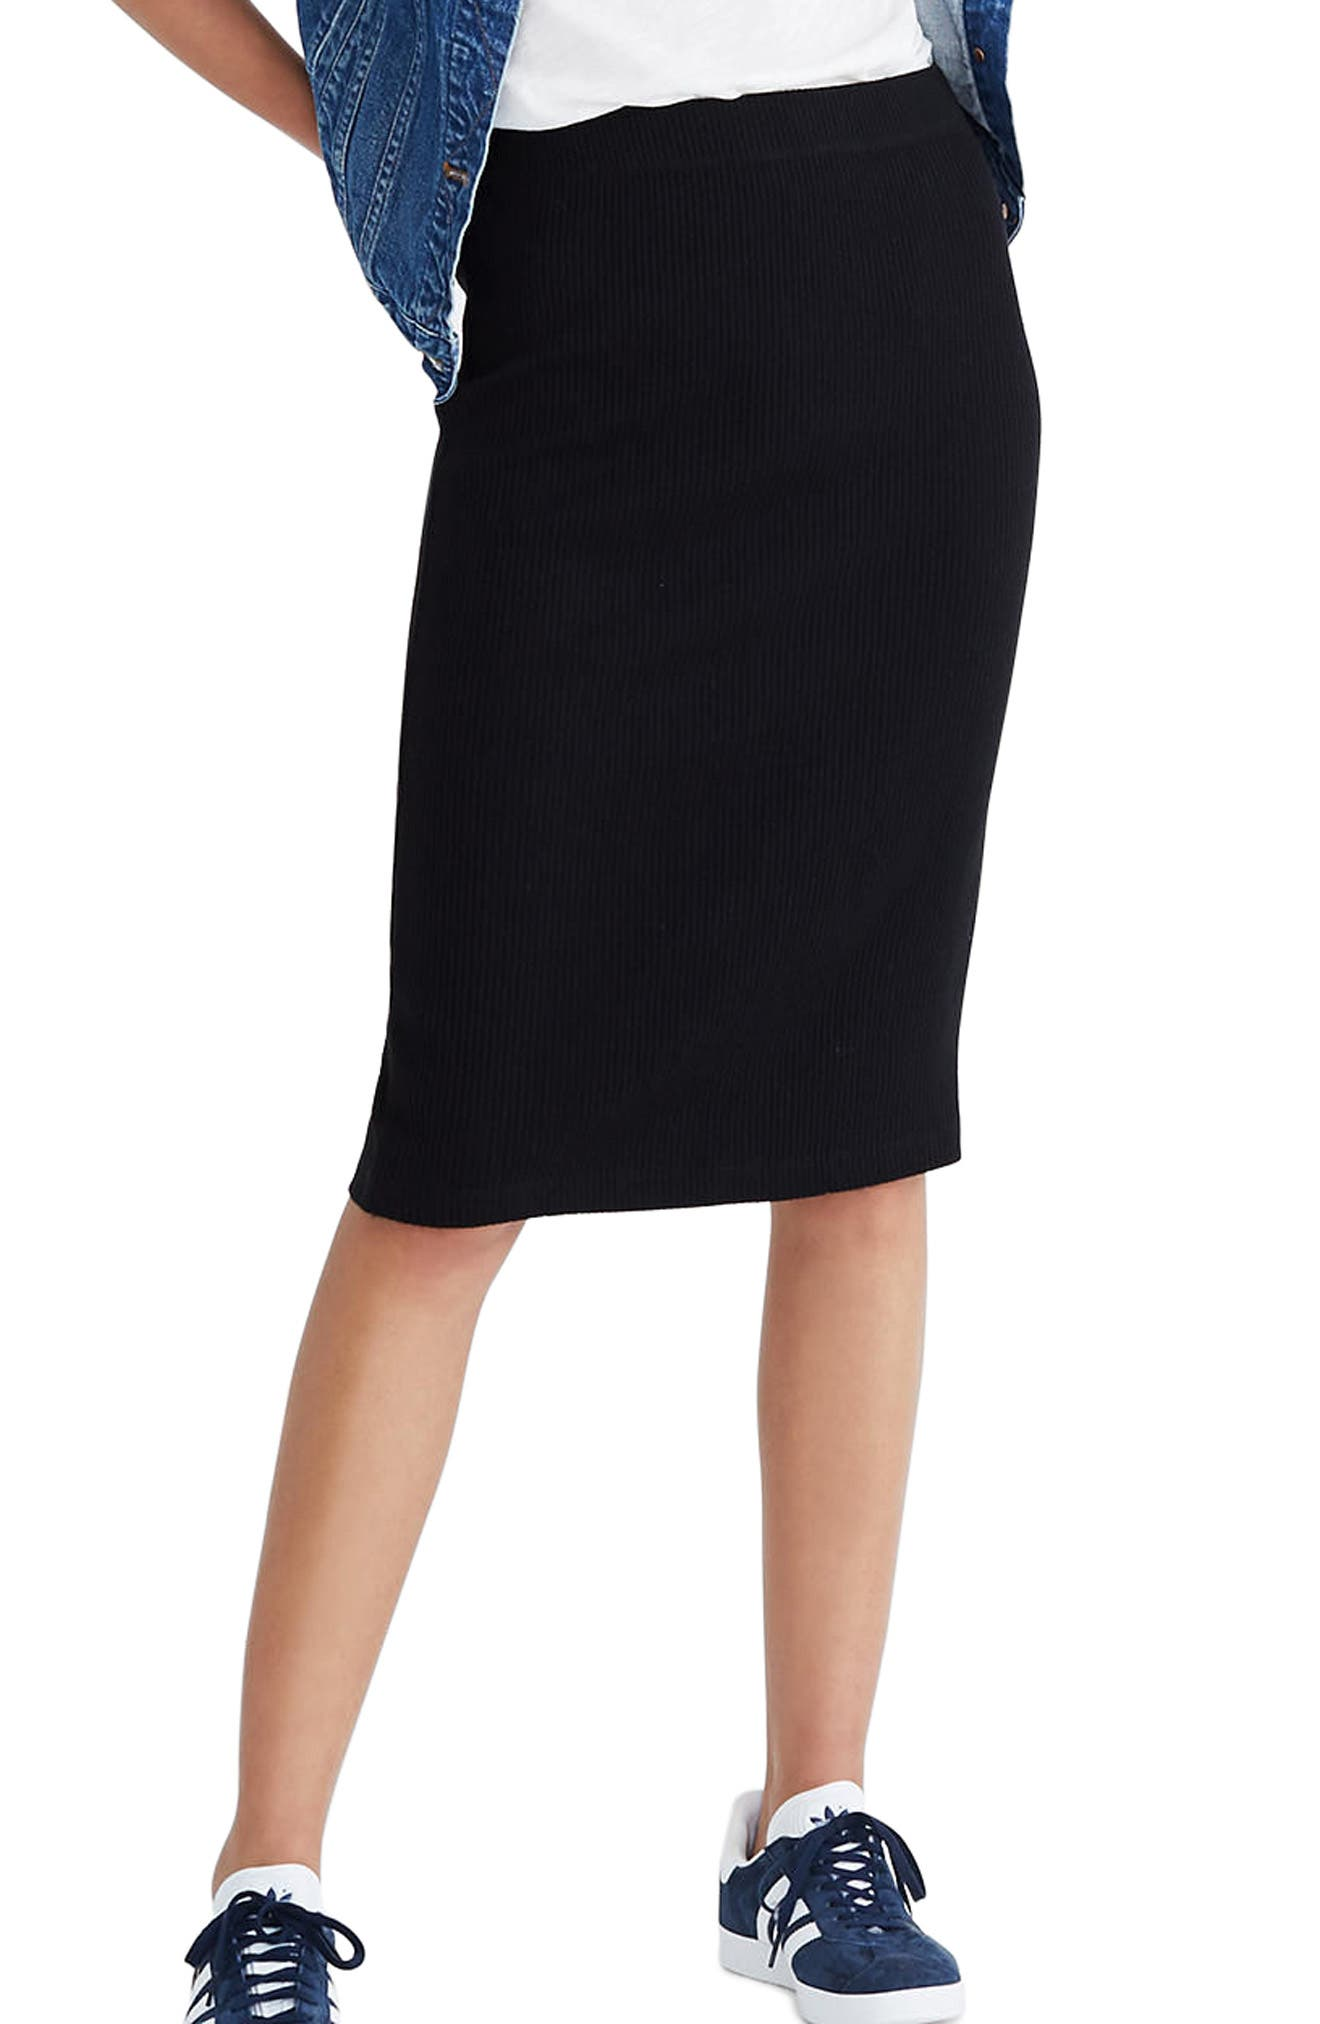 Ribbed Pencil Skirt,                         Main,                         color, 001